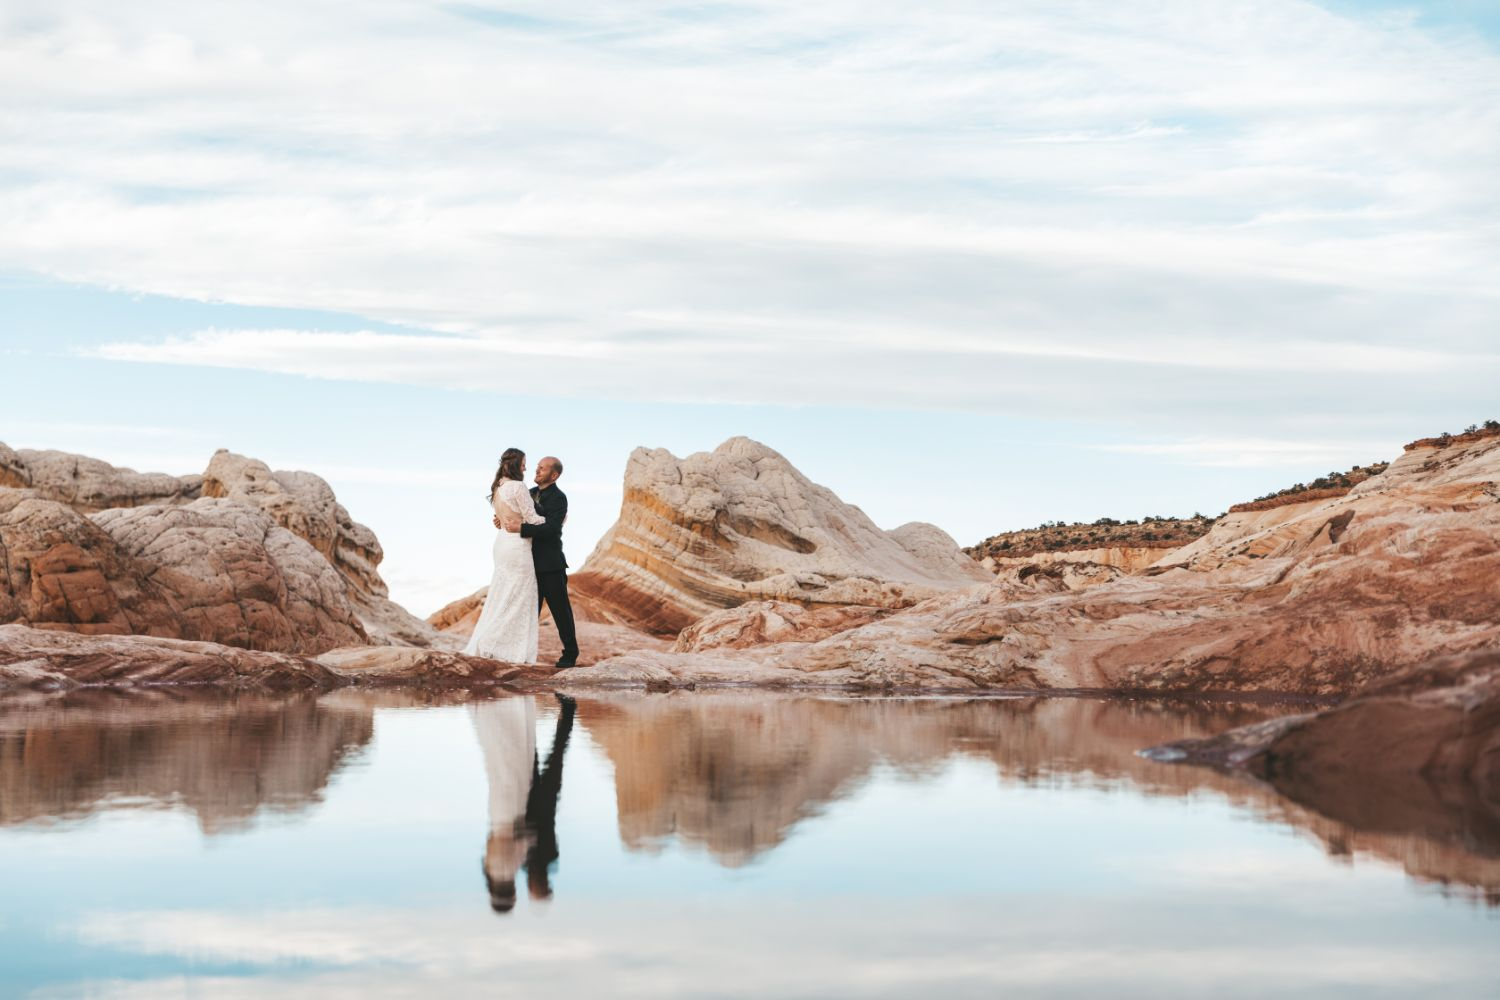 couple-embrace-utah-desert-adventure-wedding